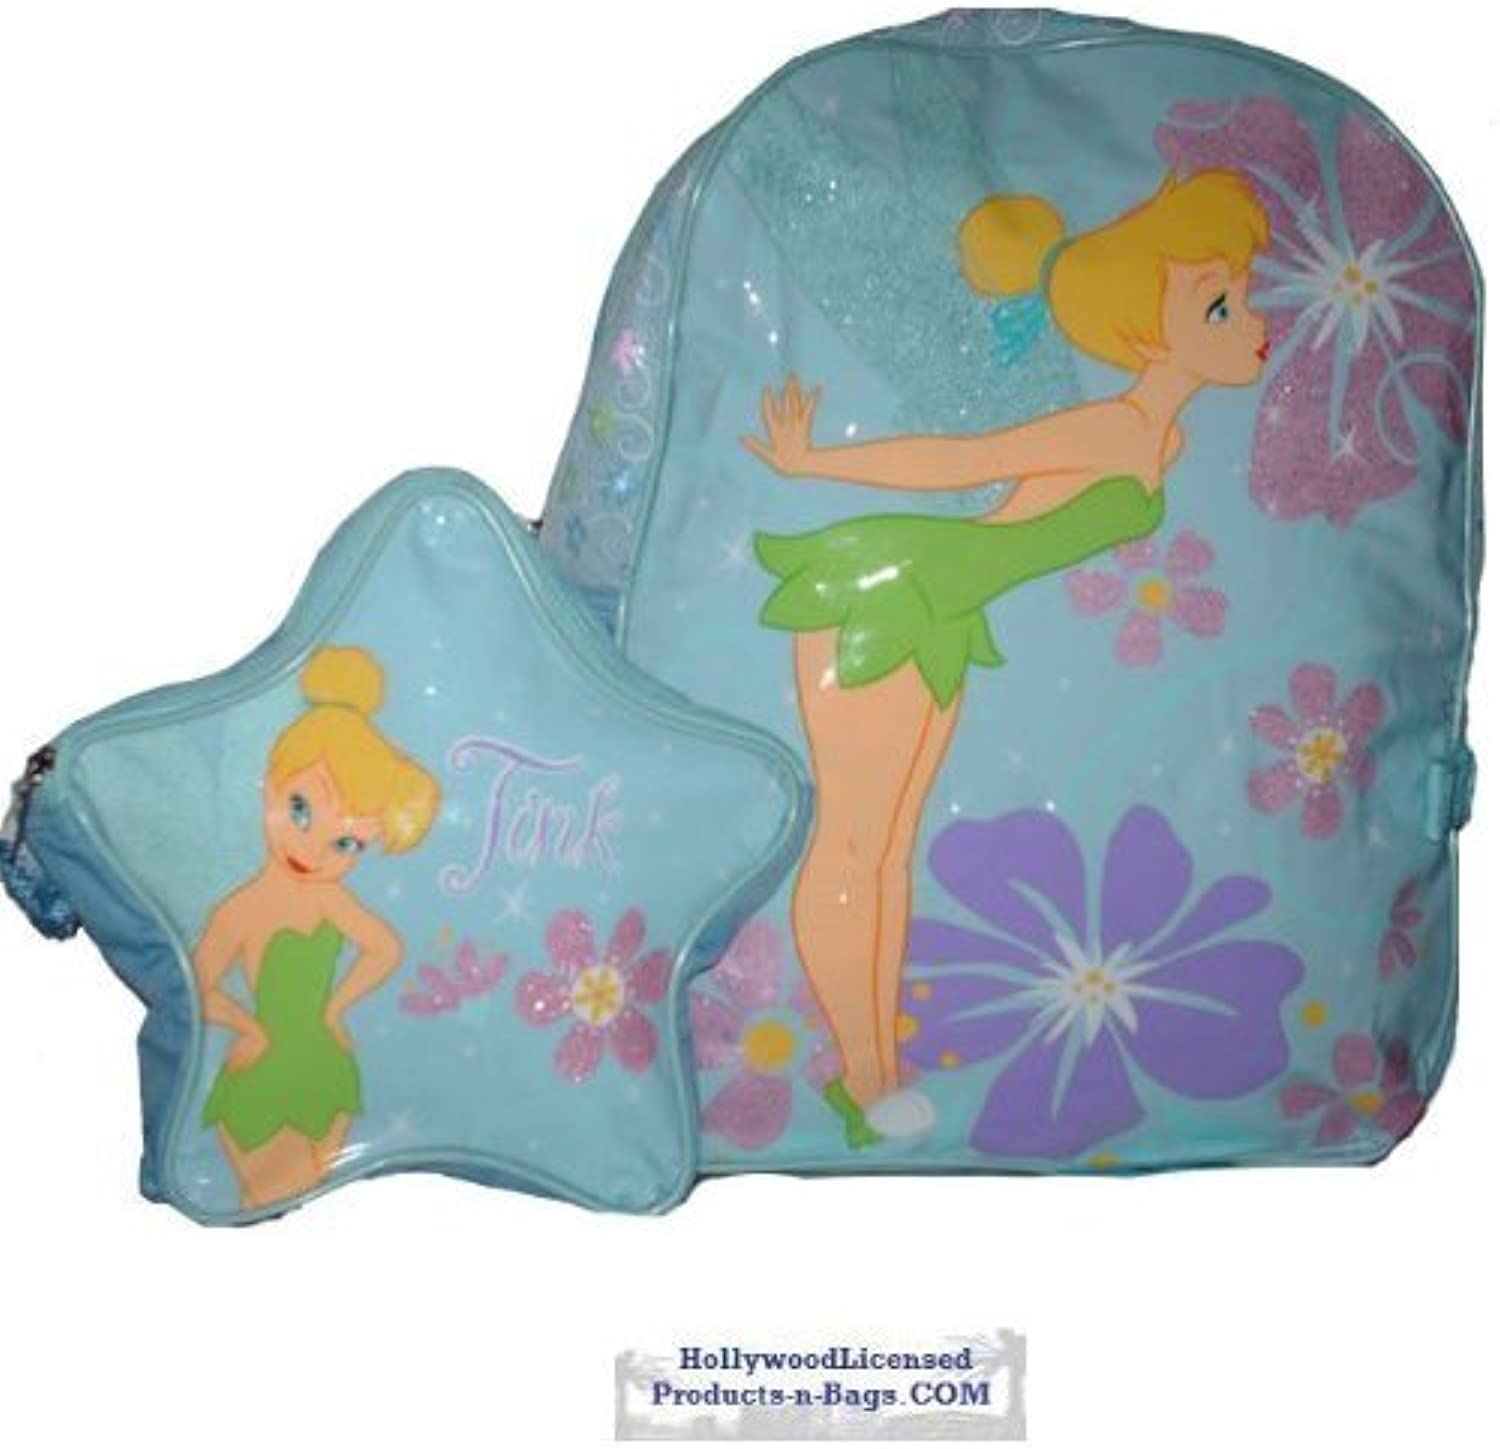 Disney Tinkerbell Tinker Bell Full Size 15 Inch School Backpack Bag with a Small Detachable Backpack